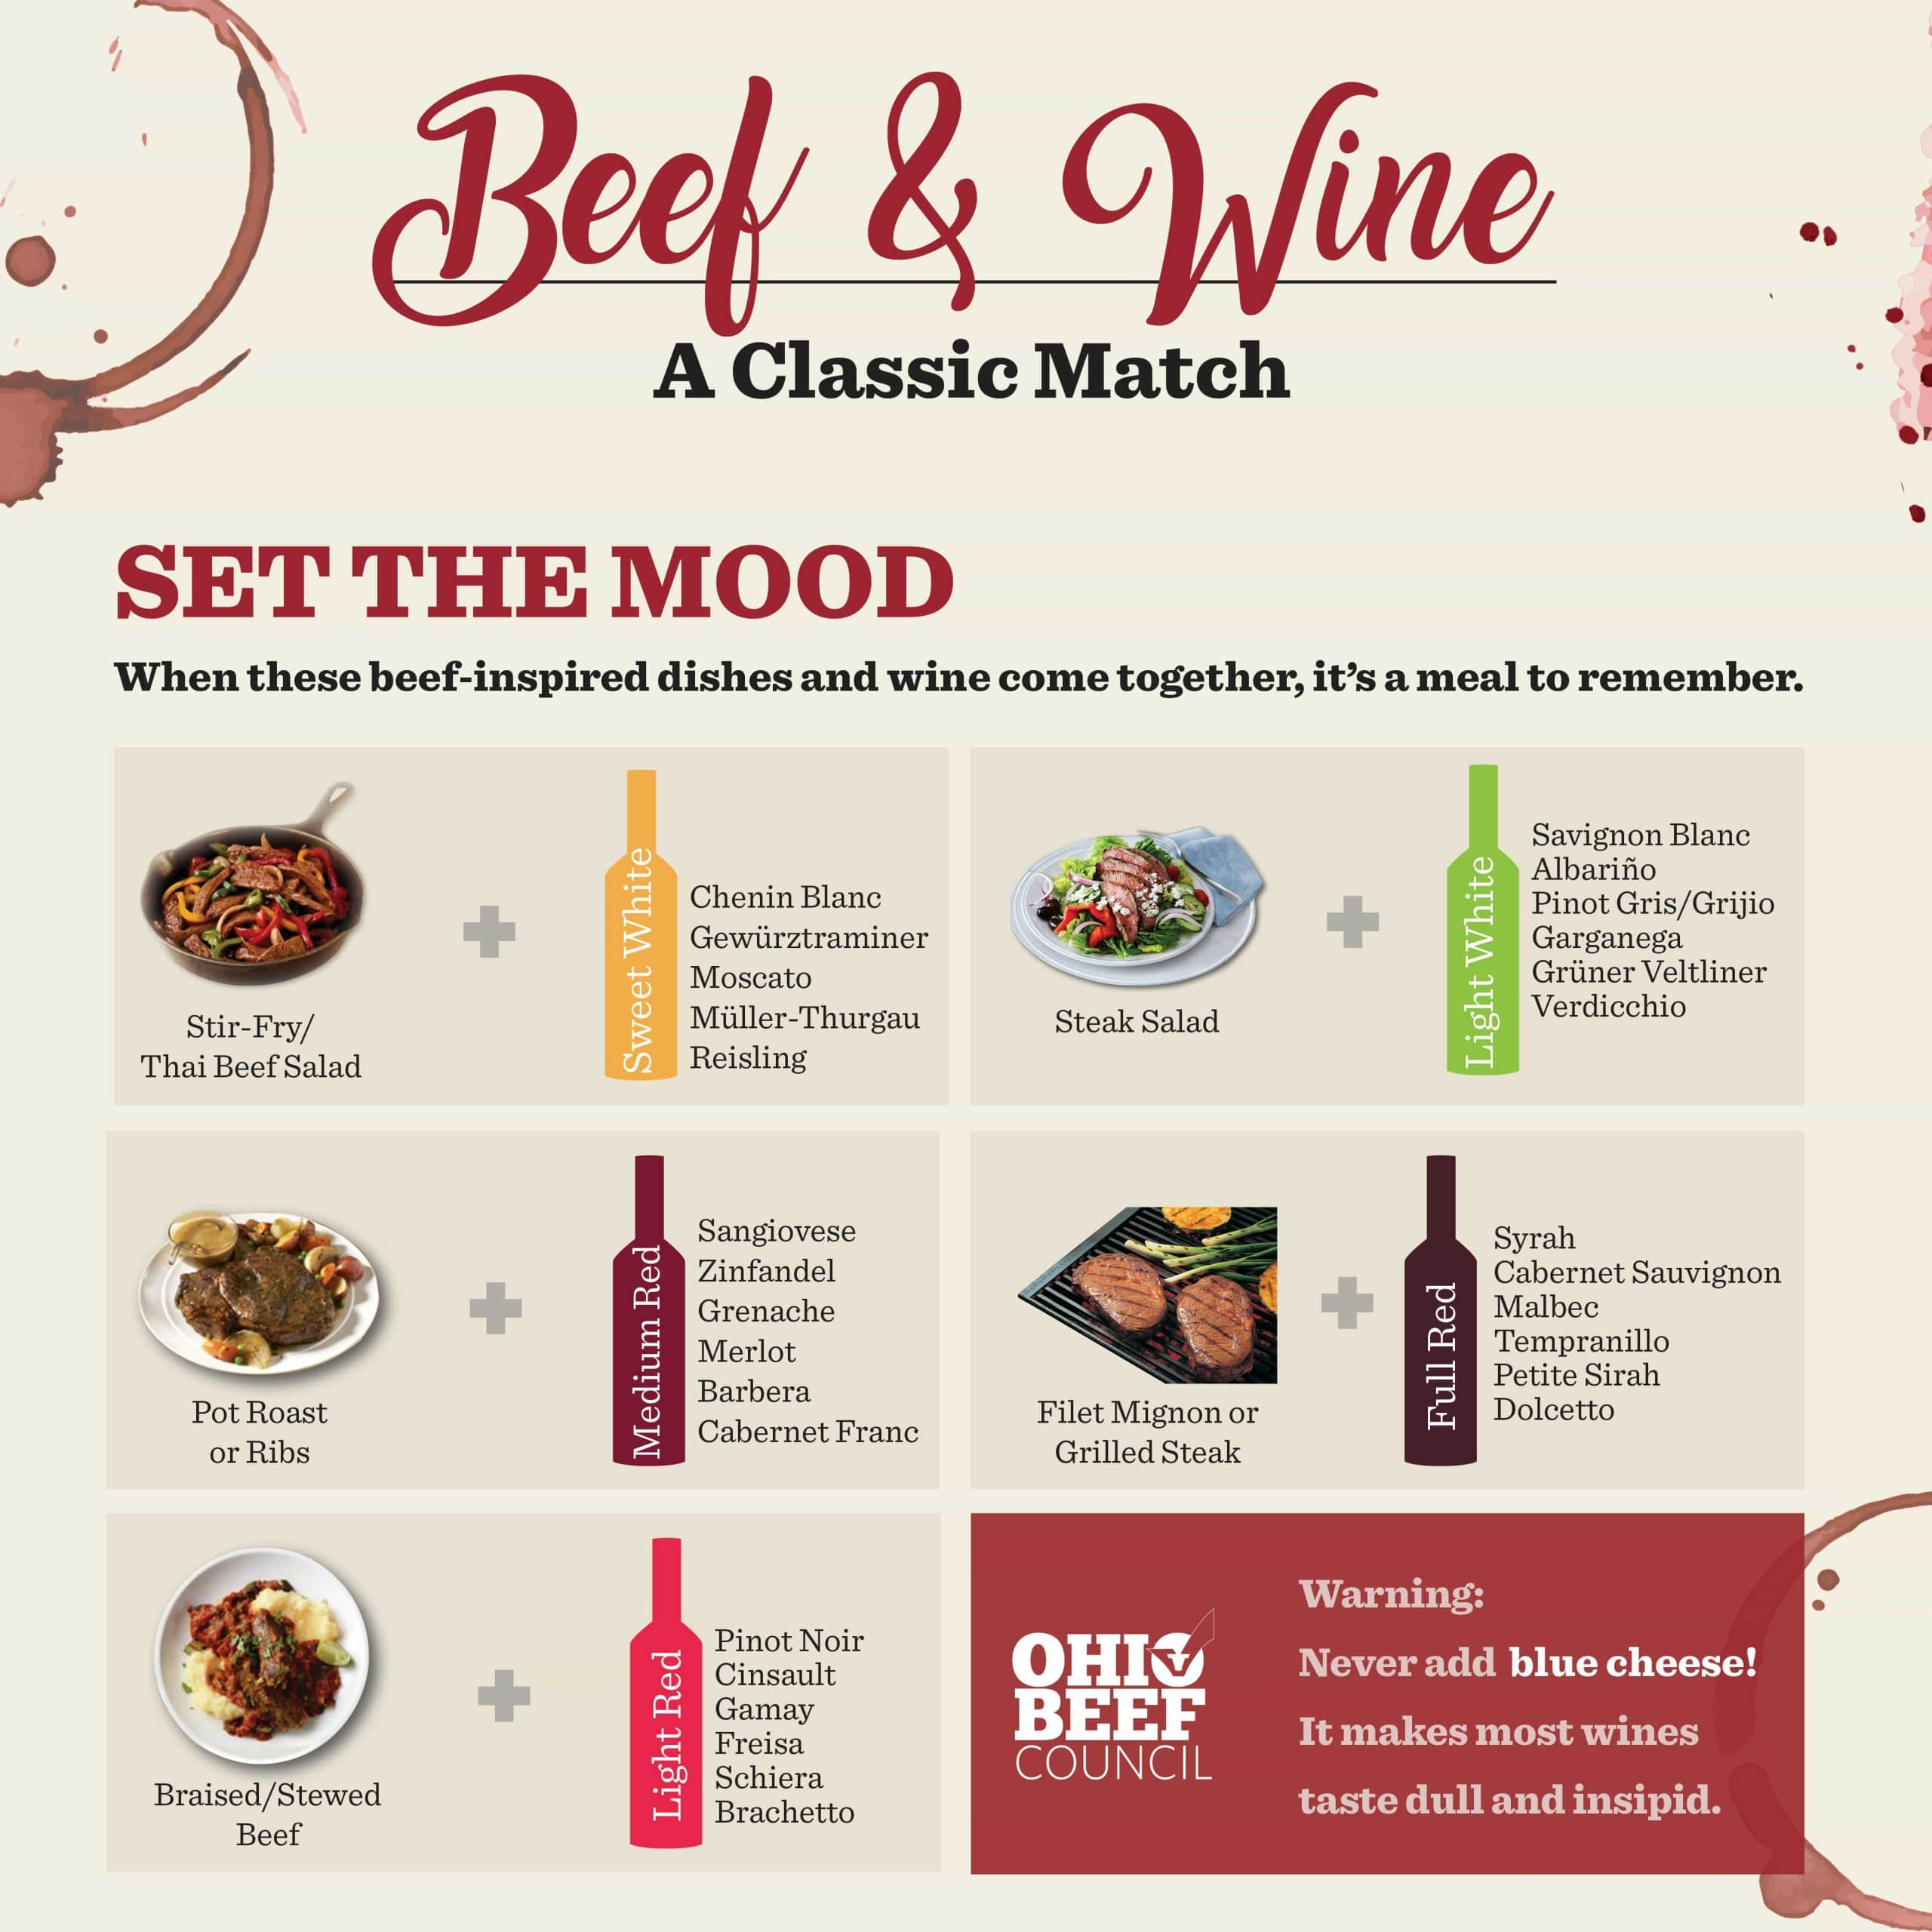 infographic showing beef and wine pairings